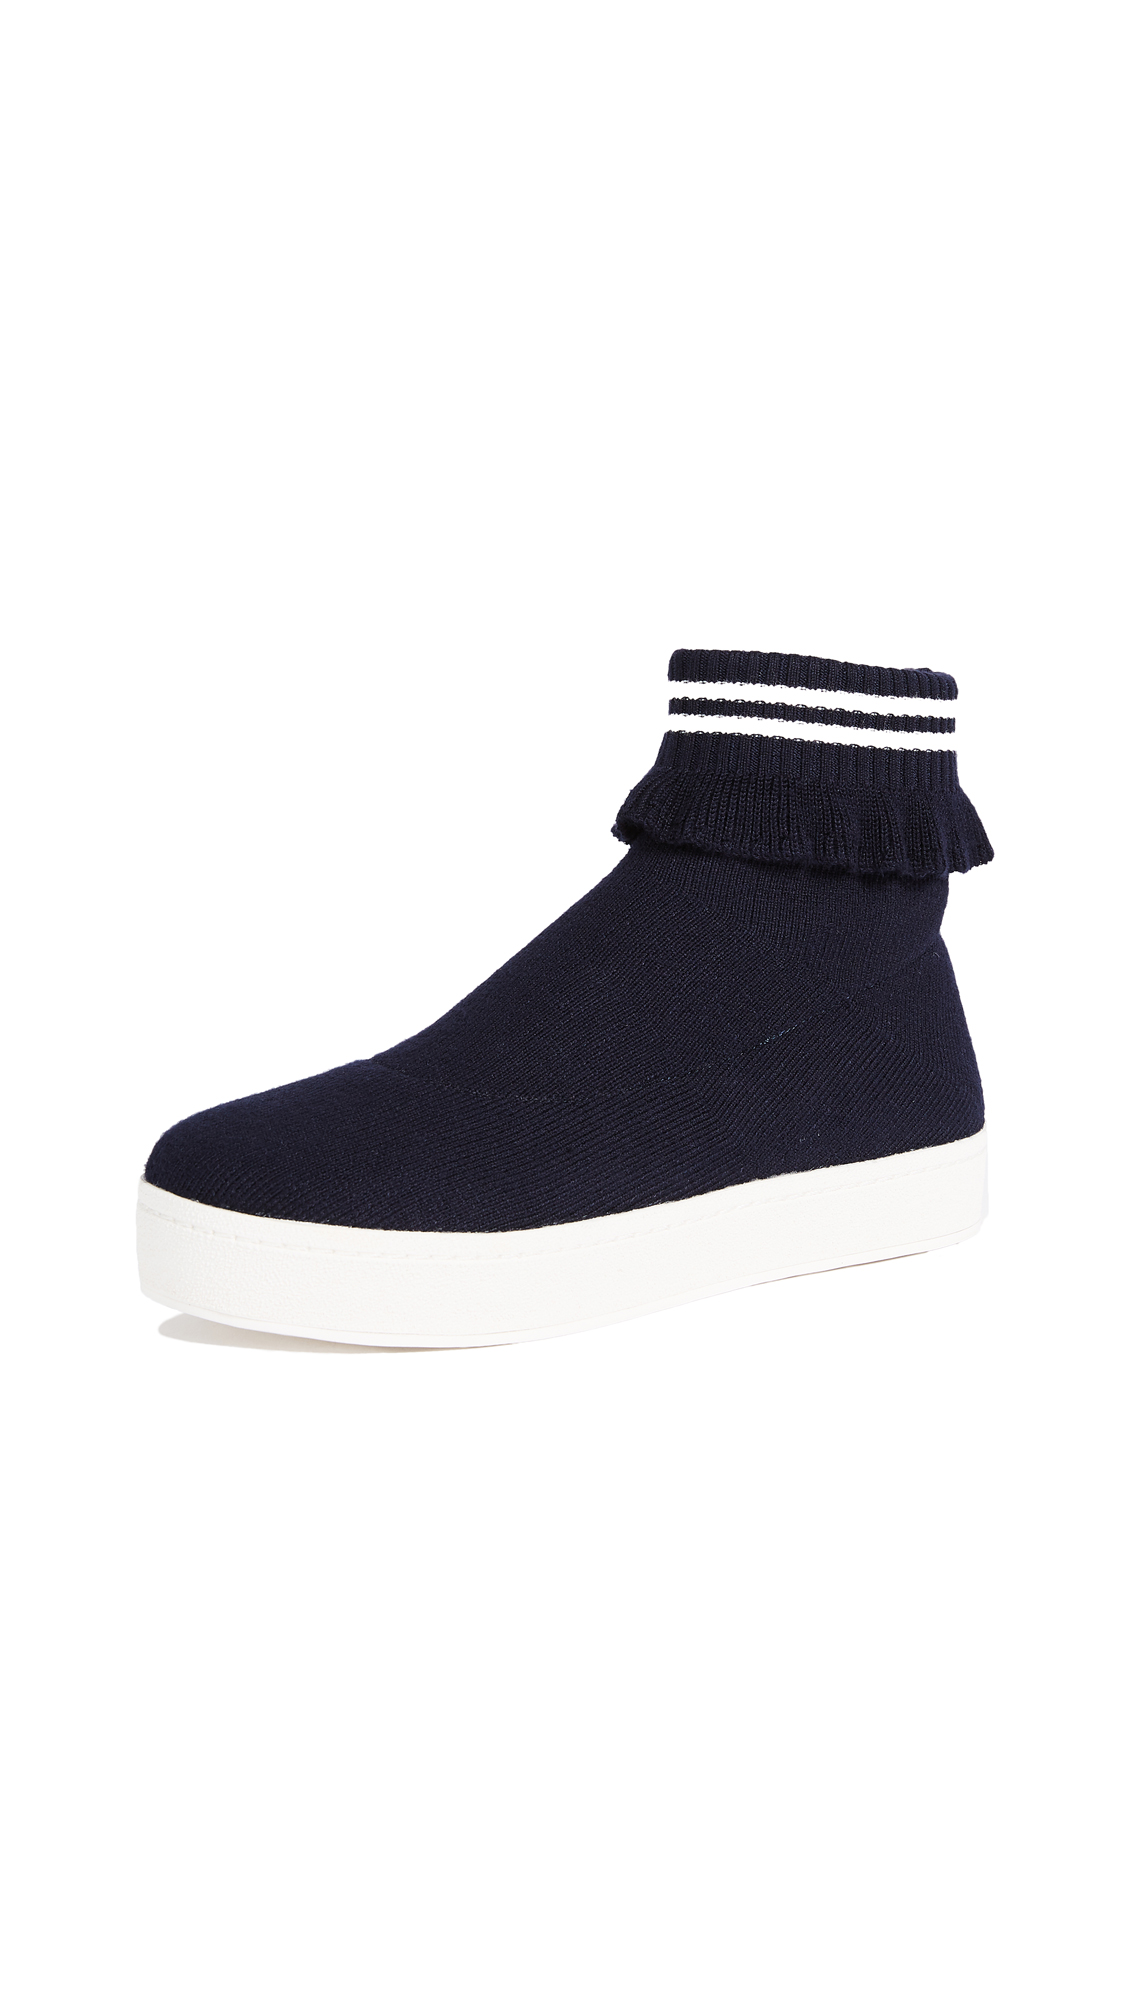 Opening Ceremony Bobby Slip On Sneakers - Collegiate Navy